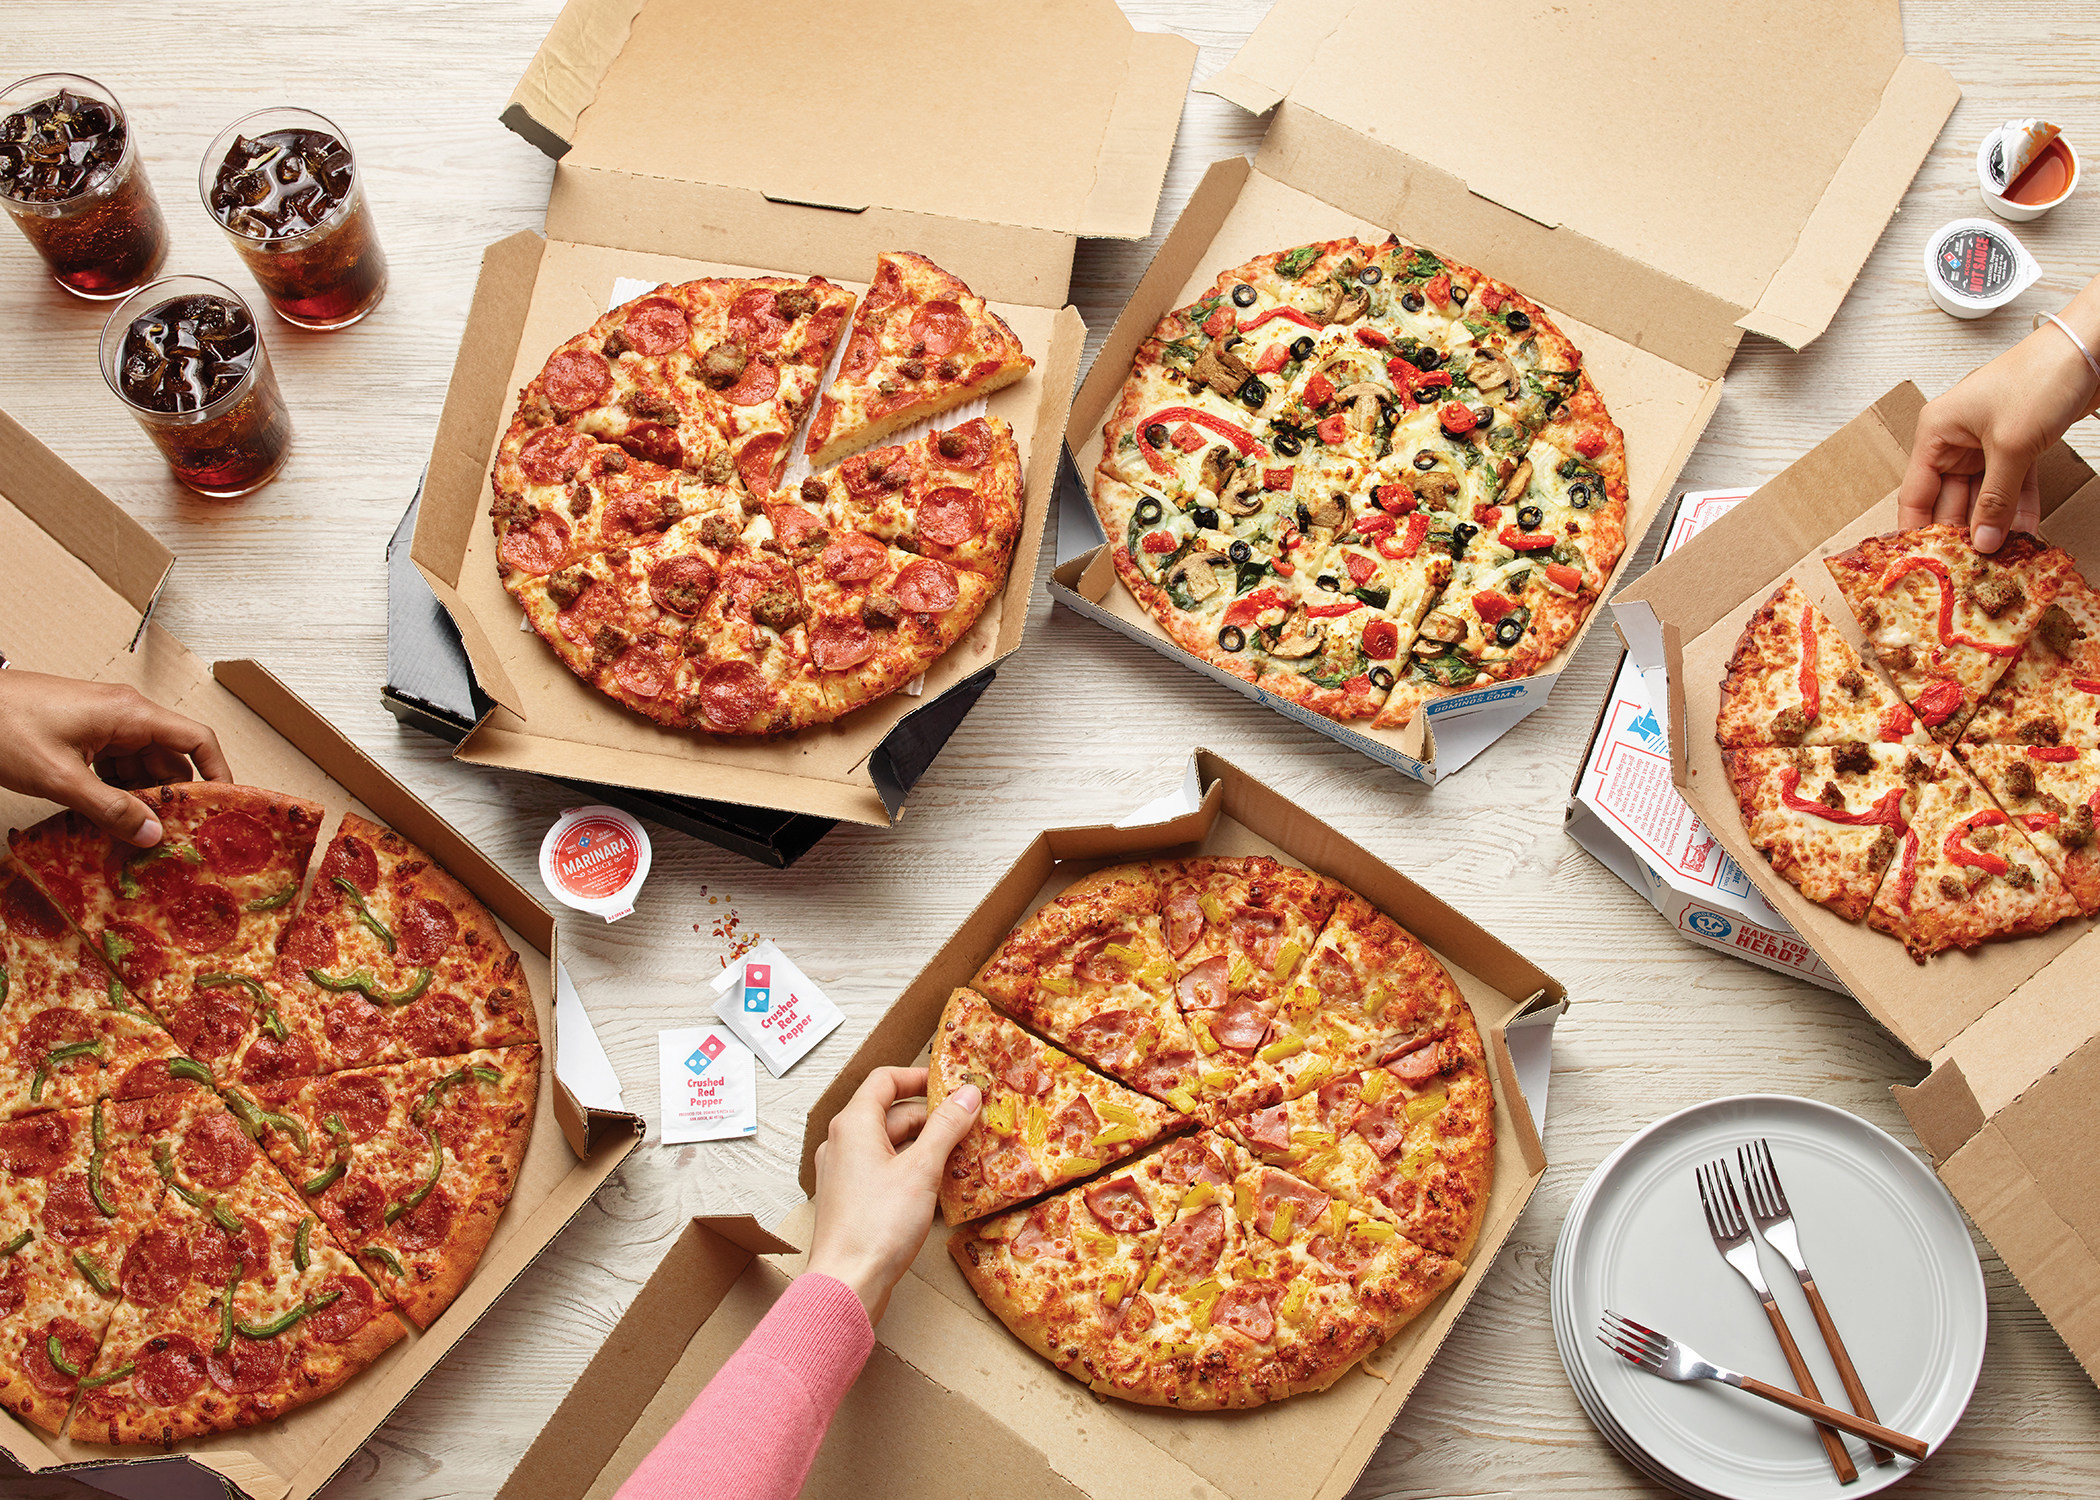 Domino S Launches 50 Percent Off Pizza Deal On Cyber Monday